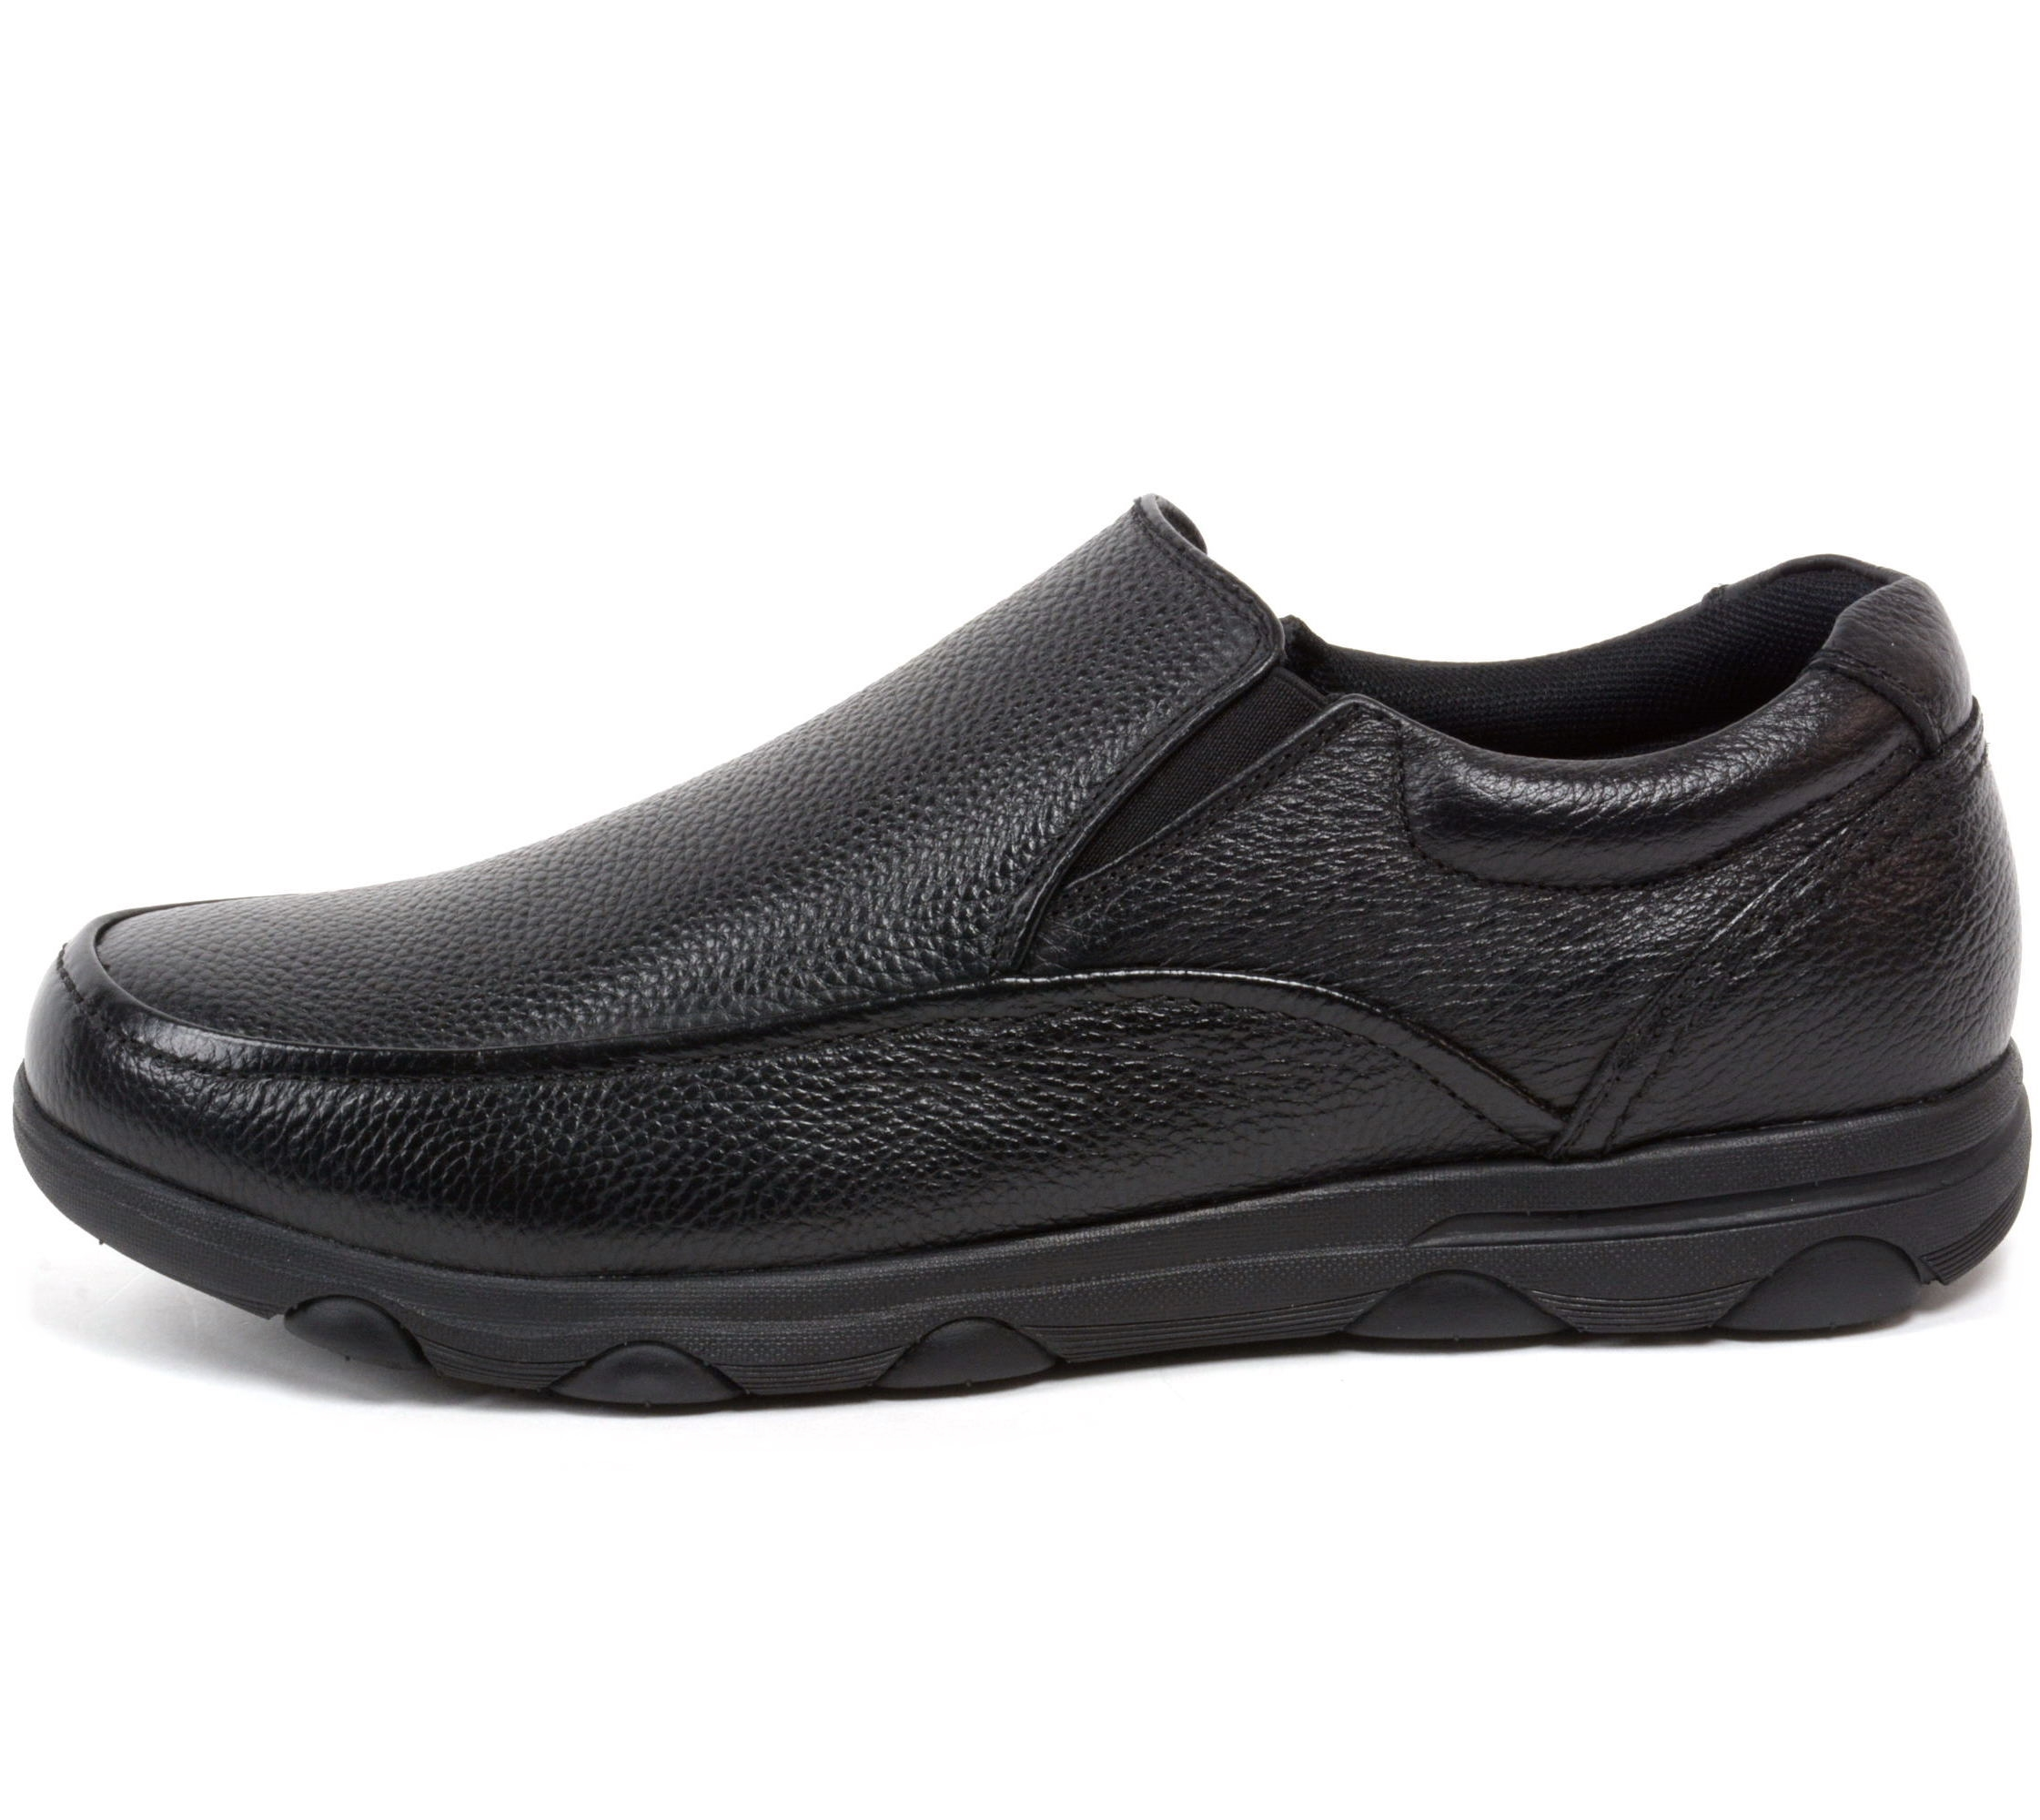 Shoes Slip Resistant Real Leather Slip